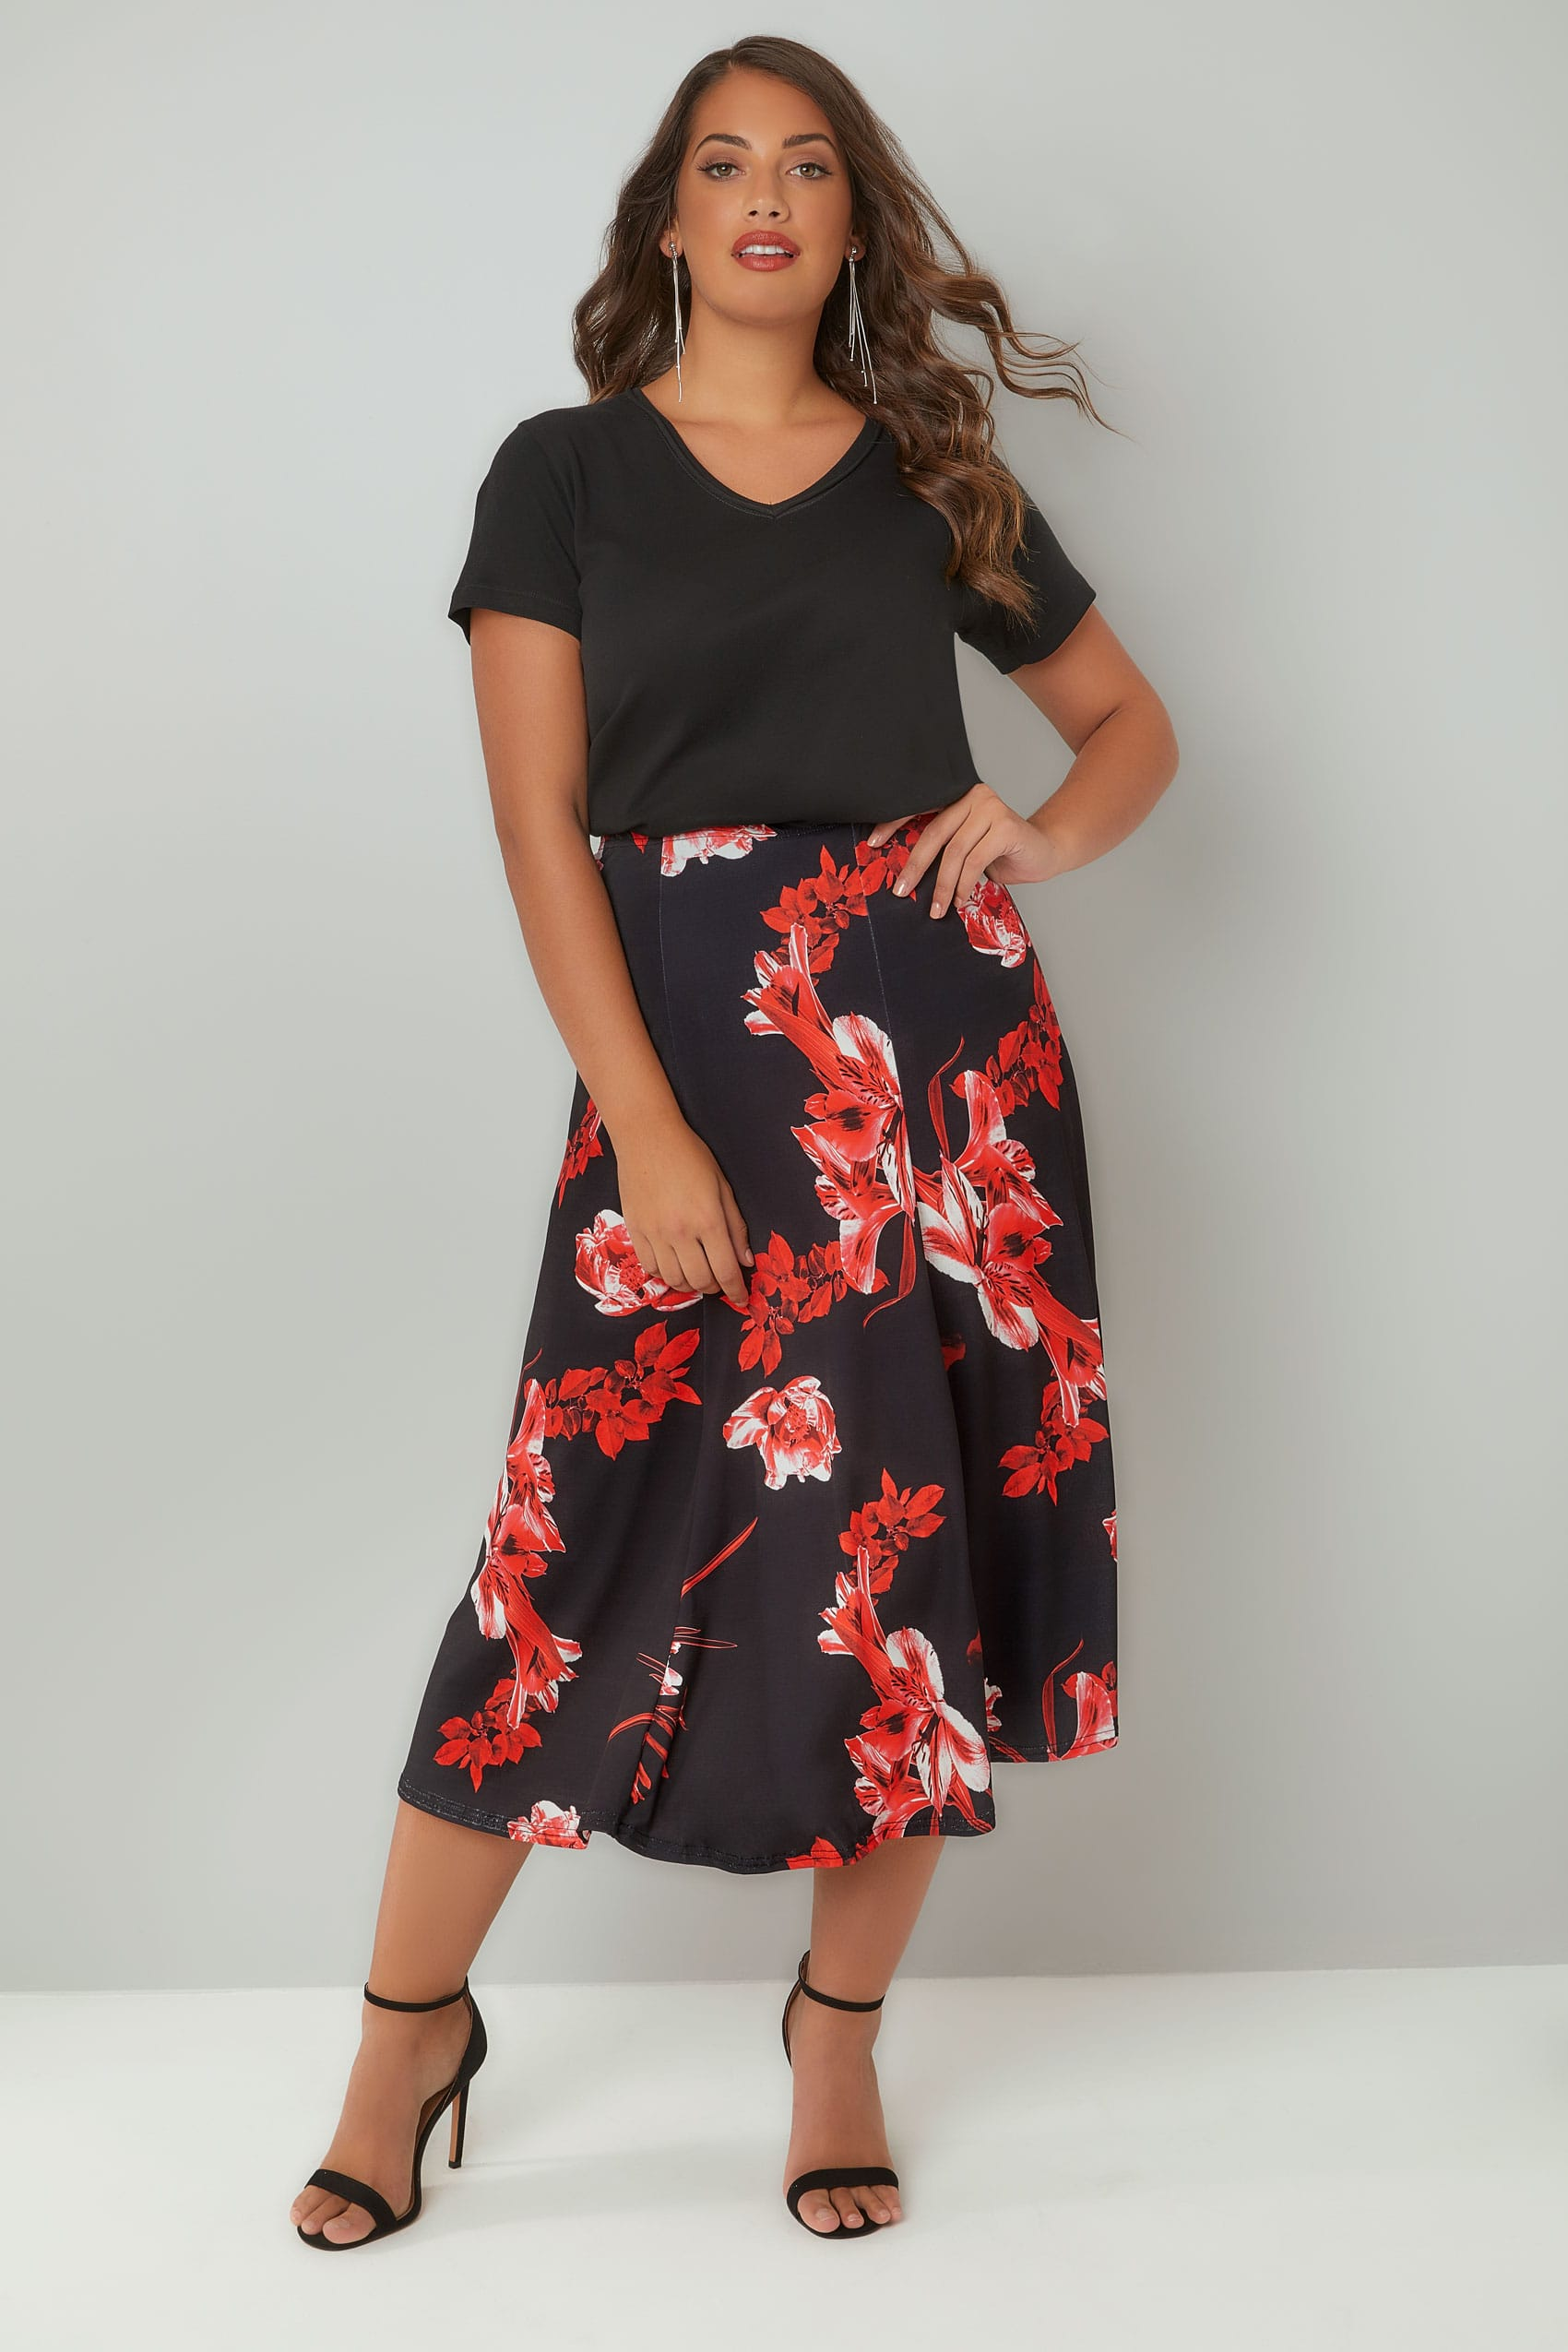 Black & Red Floral Print Midi Jersey Skirt, Plus size 16 to 36